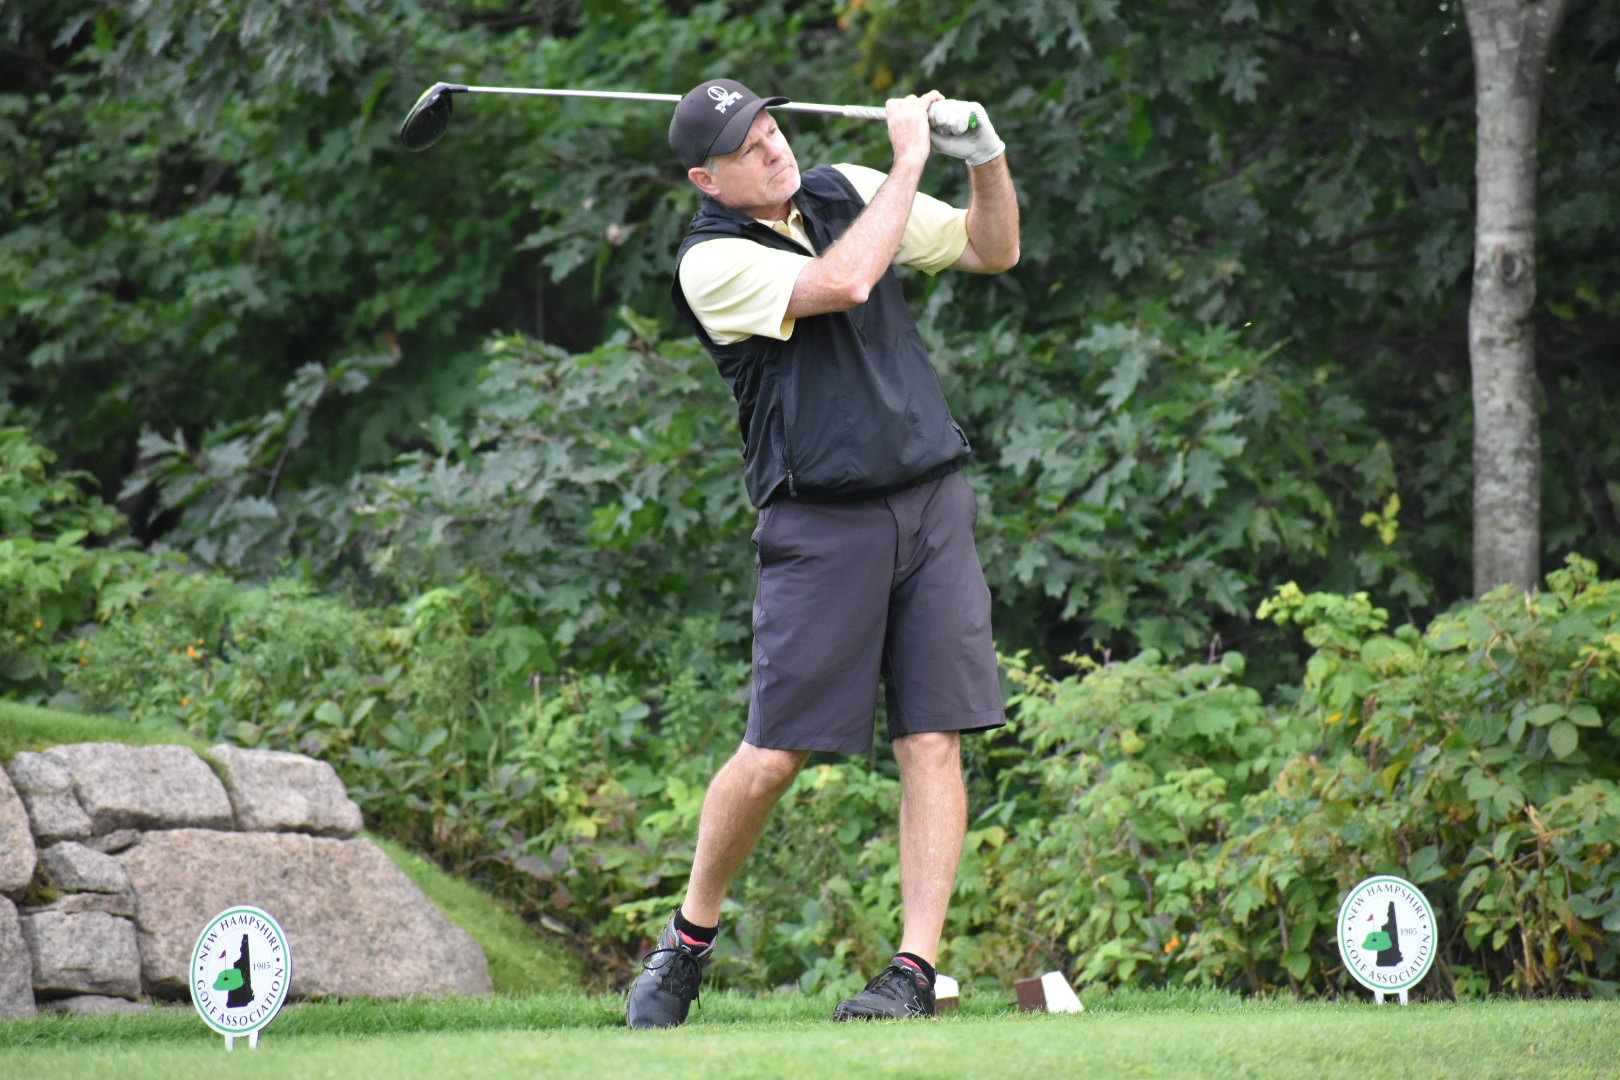 Fournier Finds Stride:  Leads NH Senior Following Round One